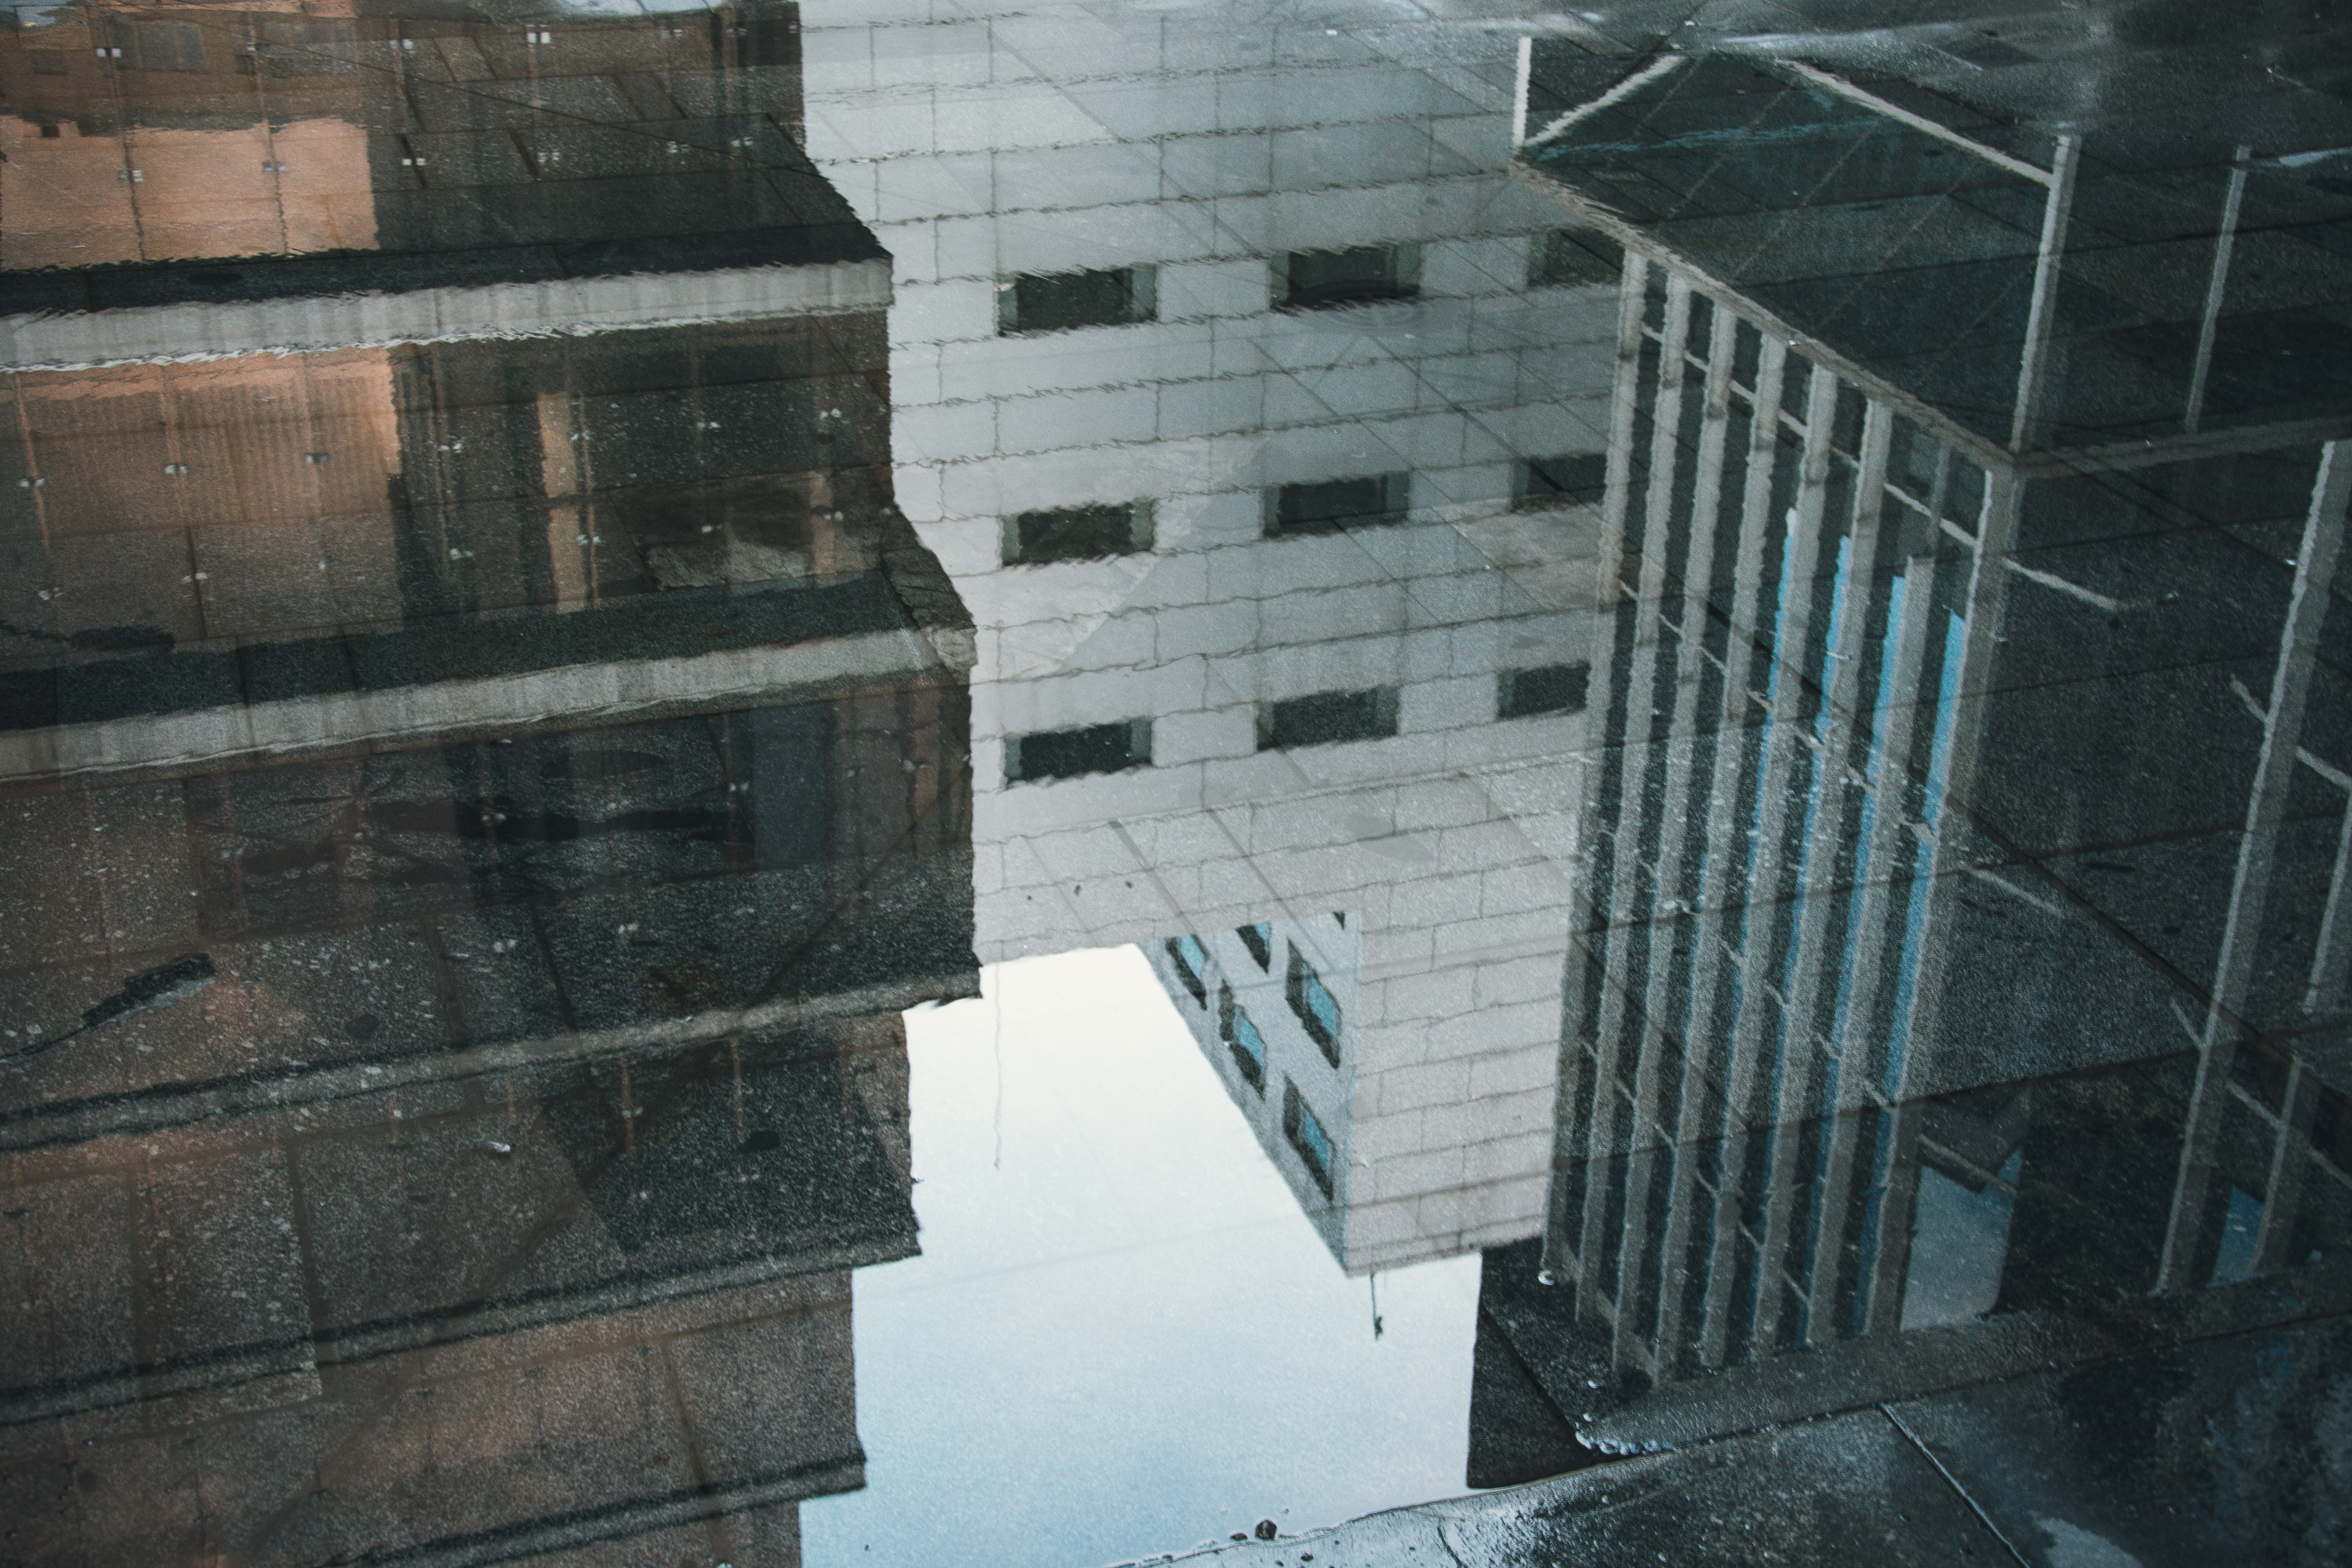 Buildings reflected in a puddle on a sidewalk